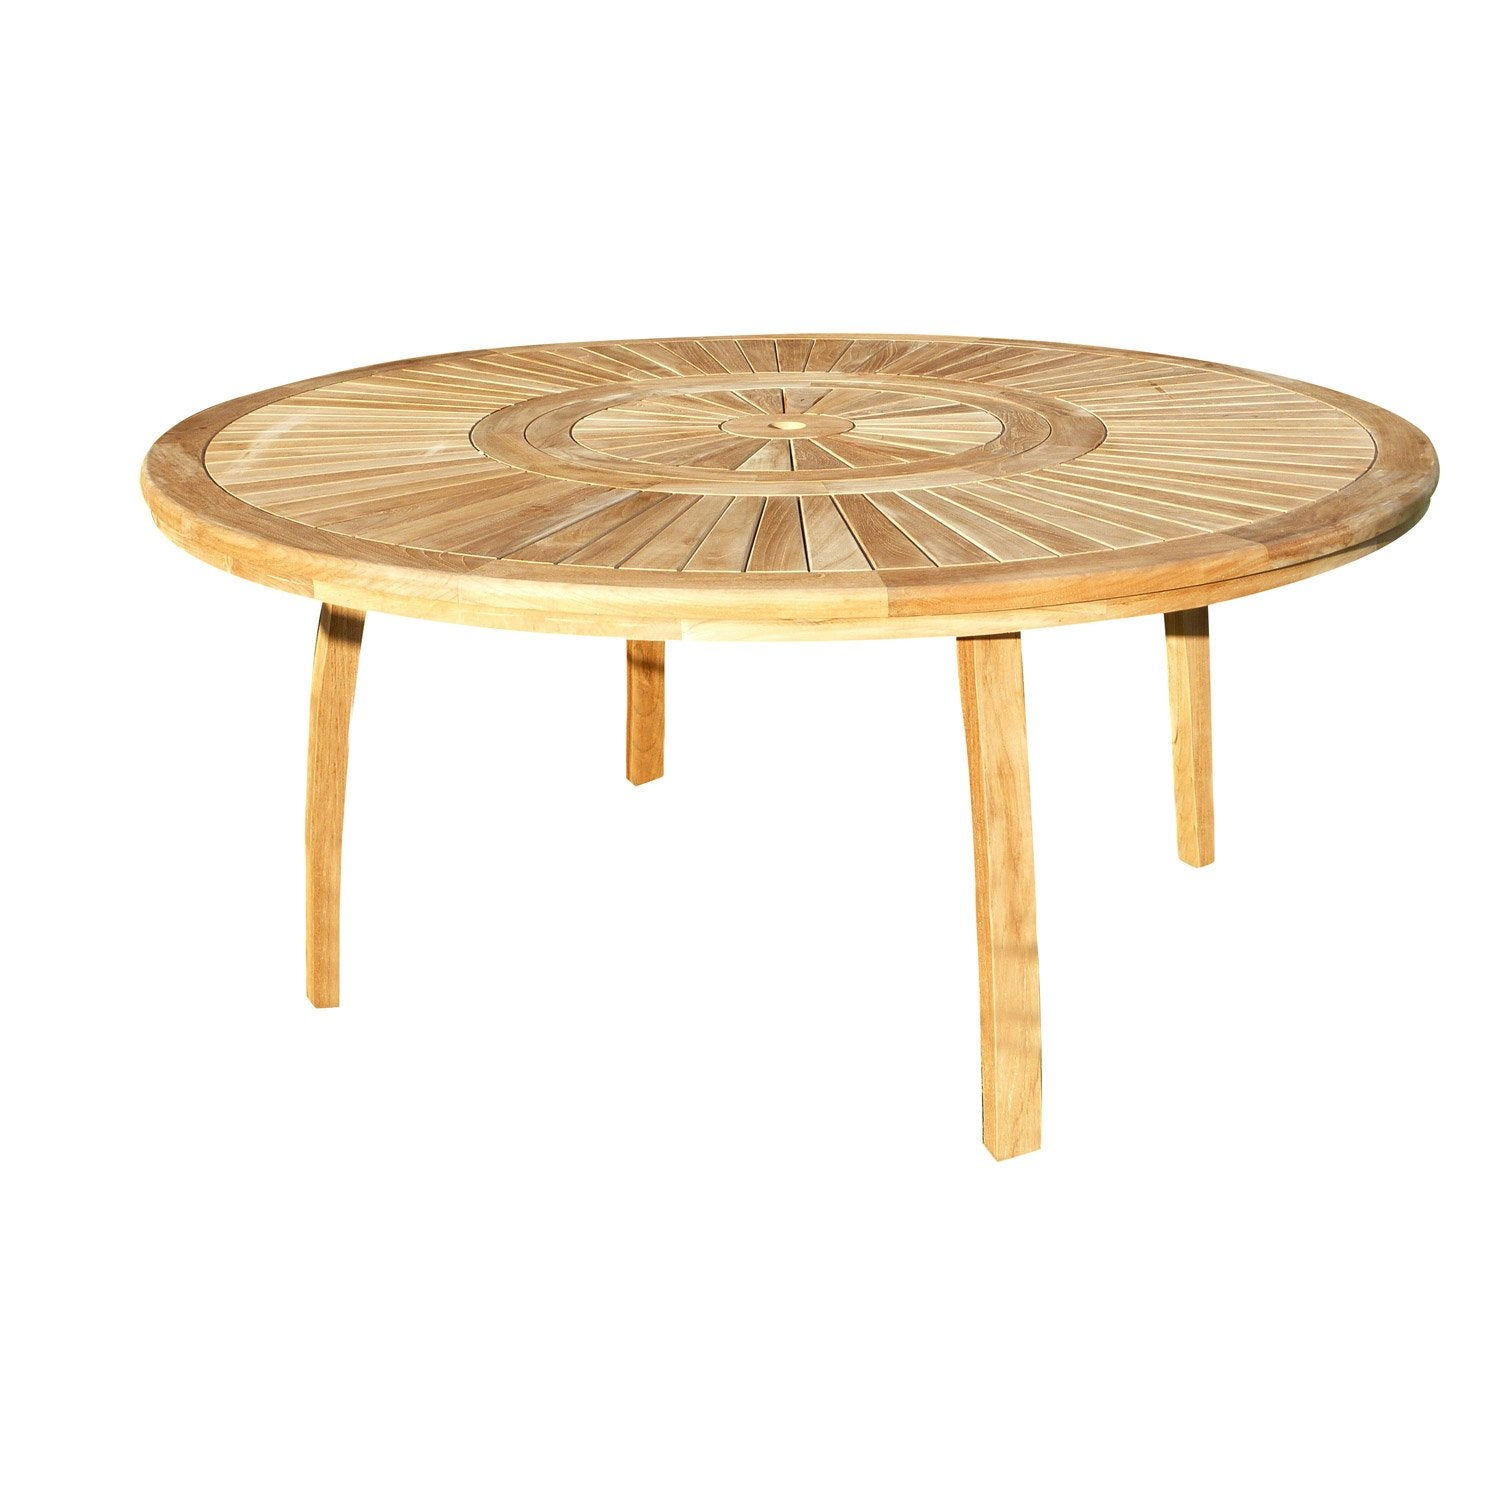 Table de jardin orion ronde naturel 8 personnes leroy merlin for Table ronde 6 personnes